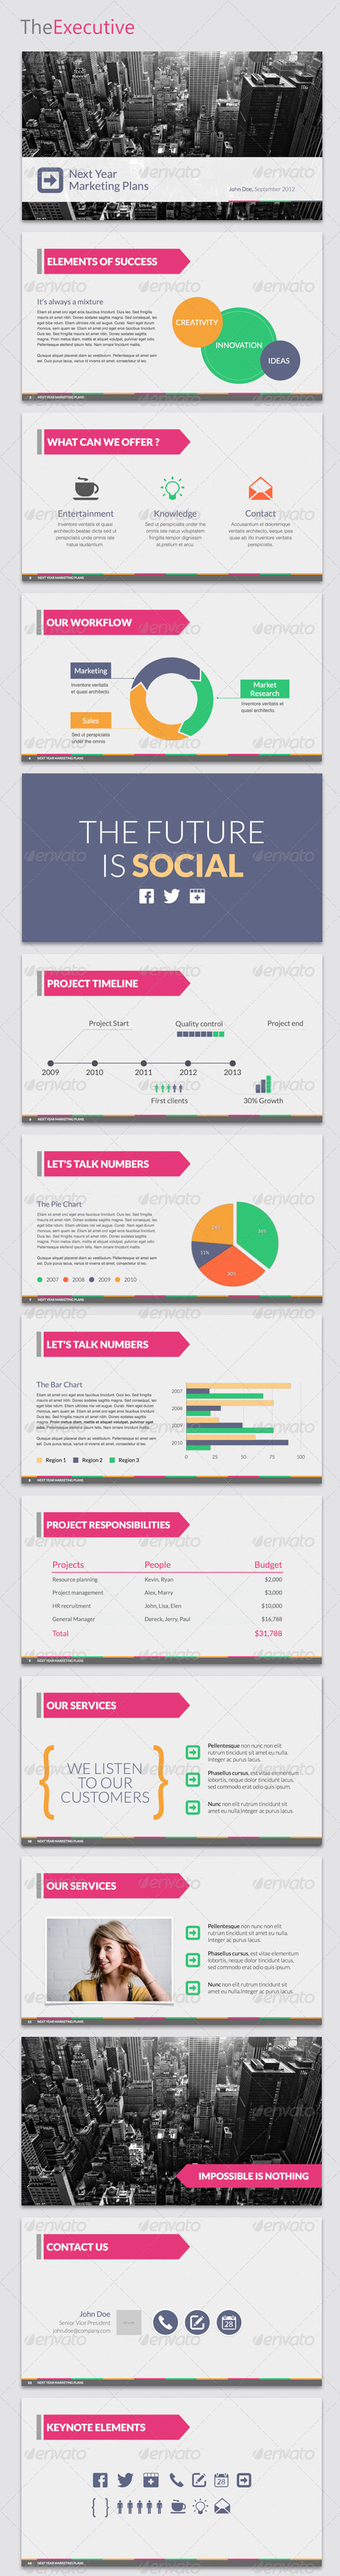 GraphicRiver TheExecutive Keynote Template 3266532